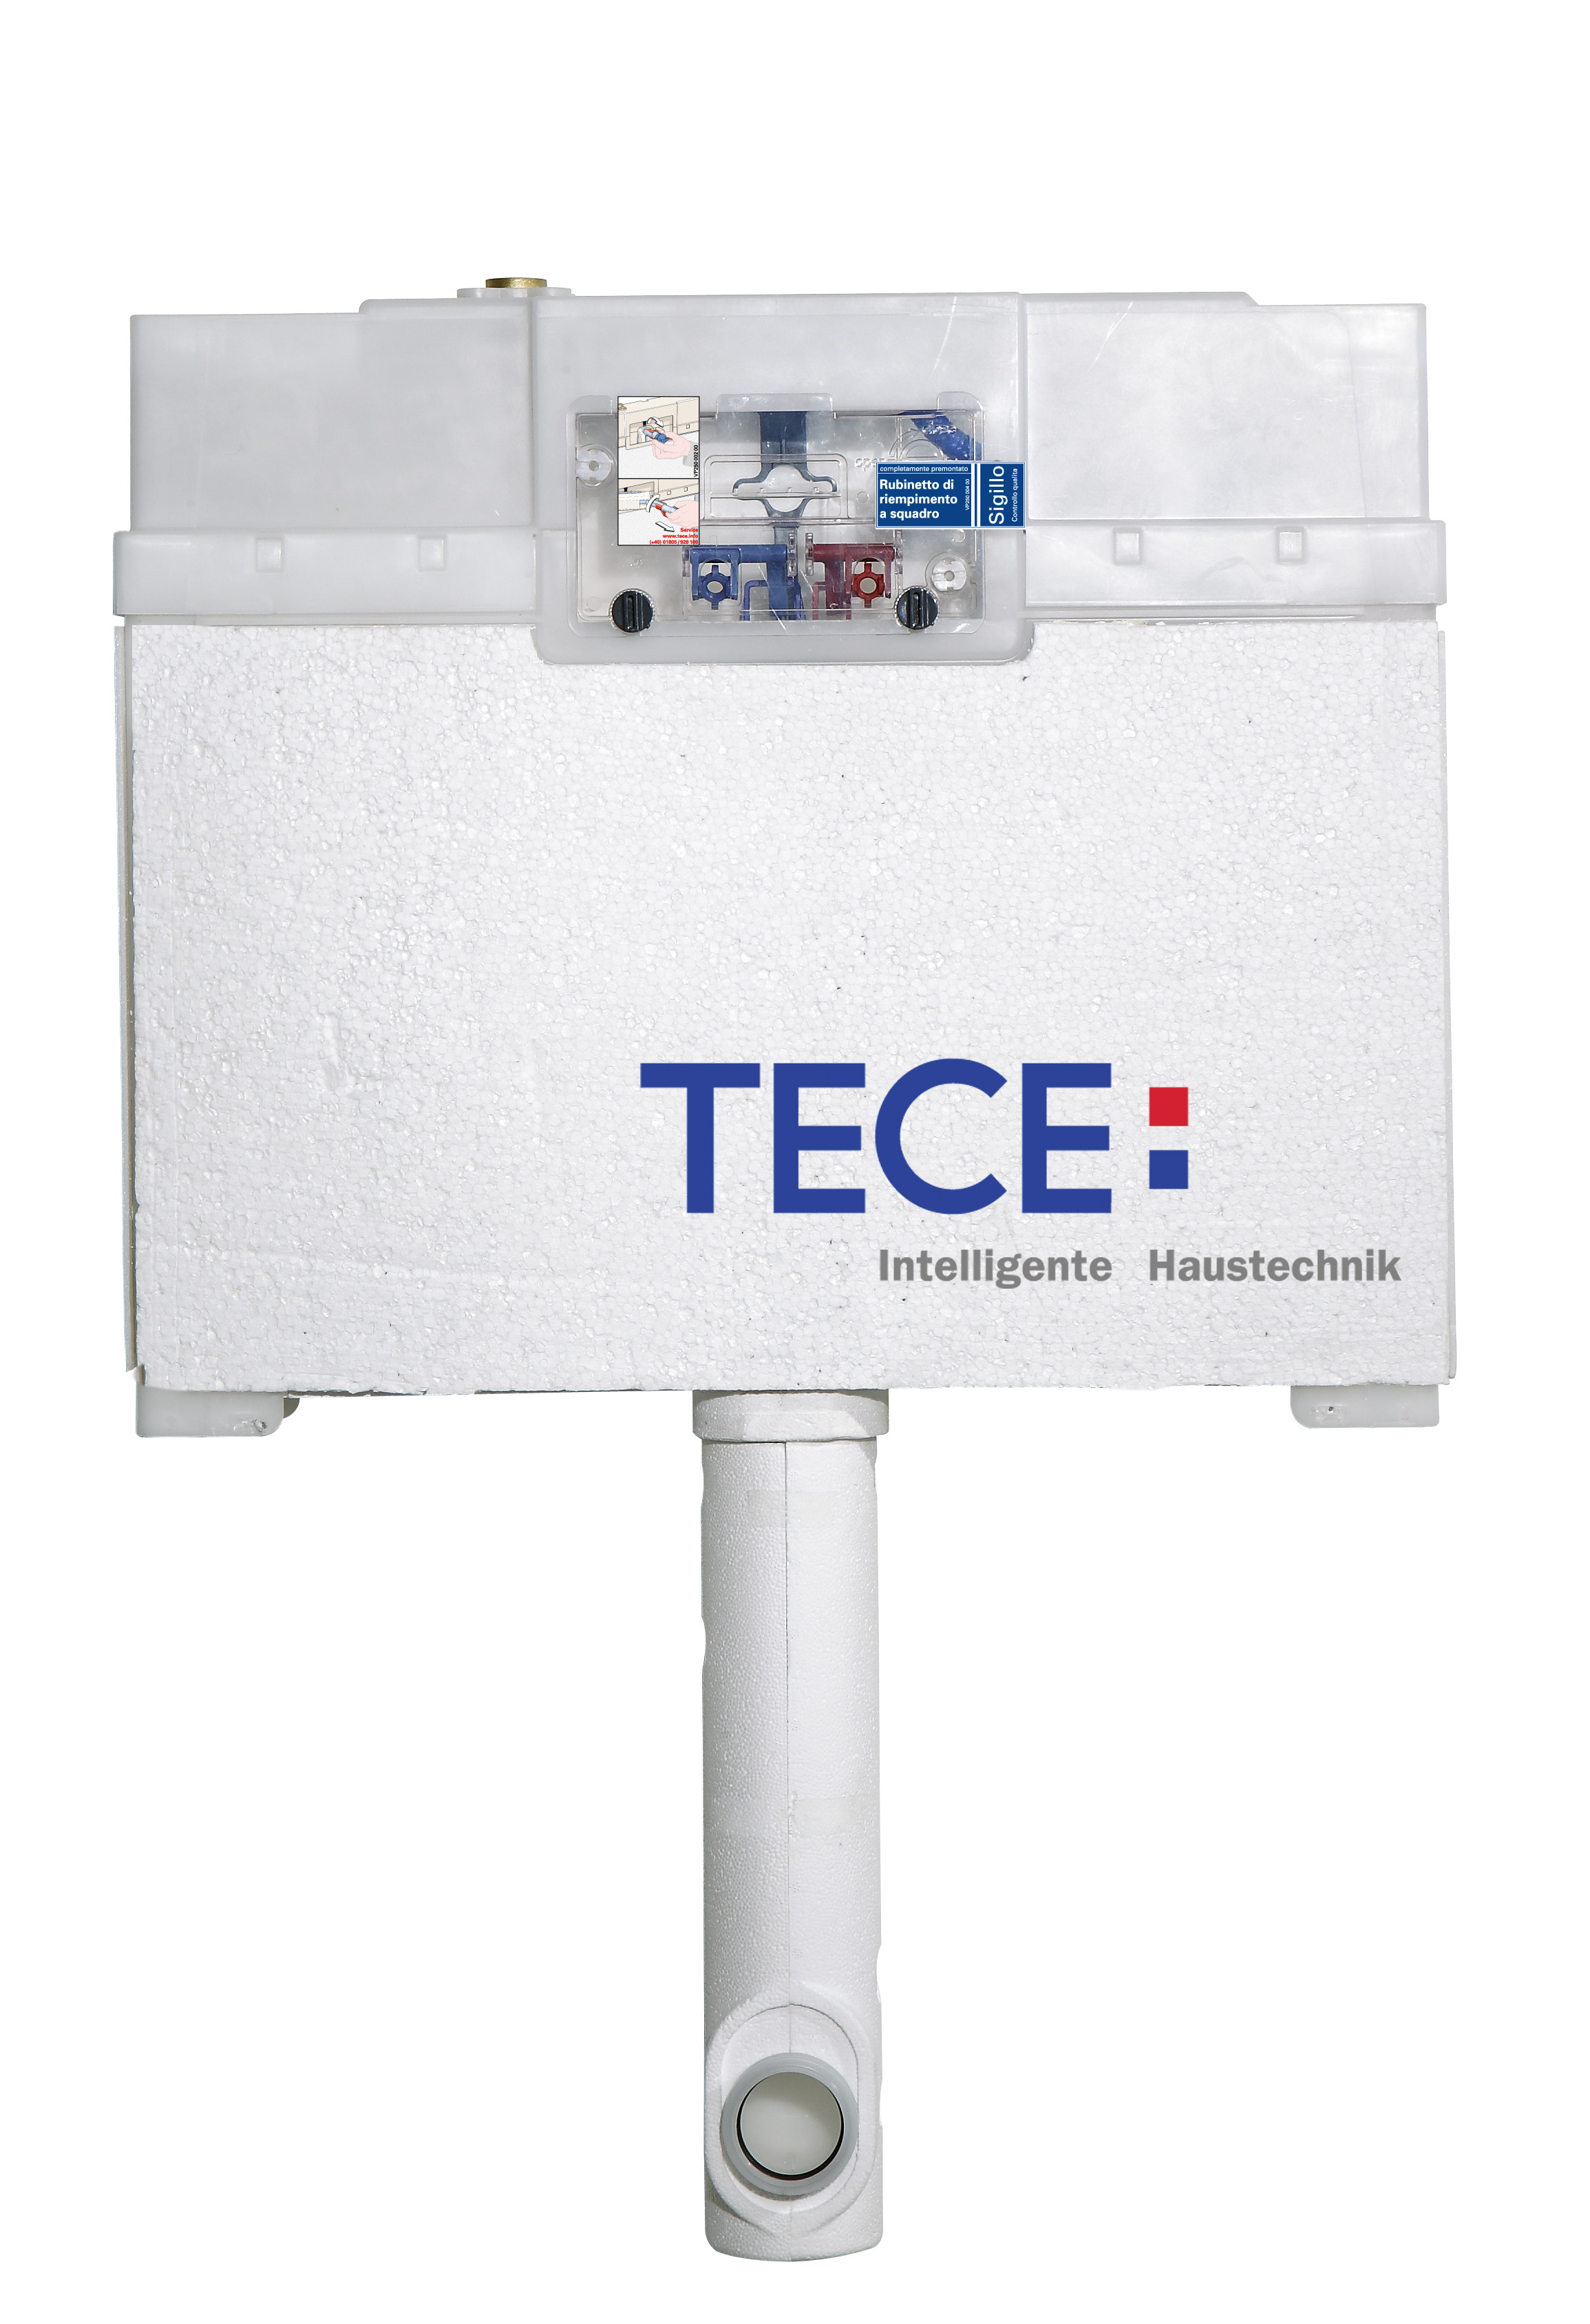 TECE 8cm Pedestal cistern WELS 3 and 4 Star rated